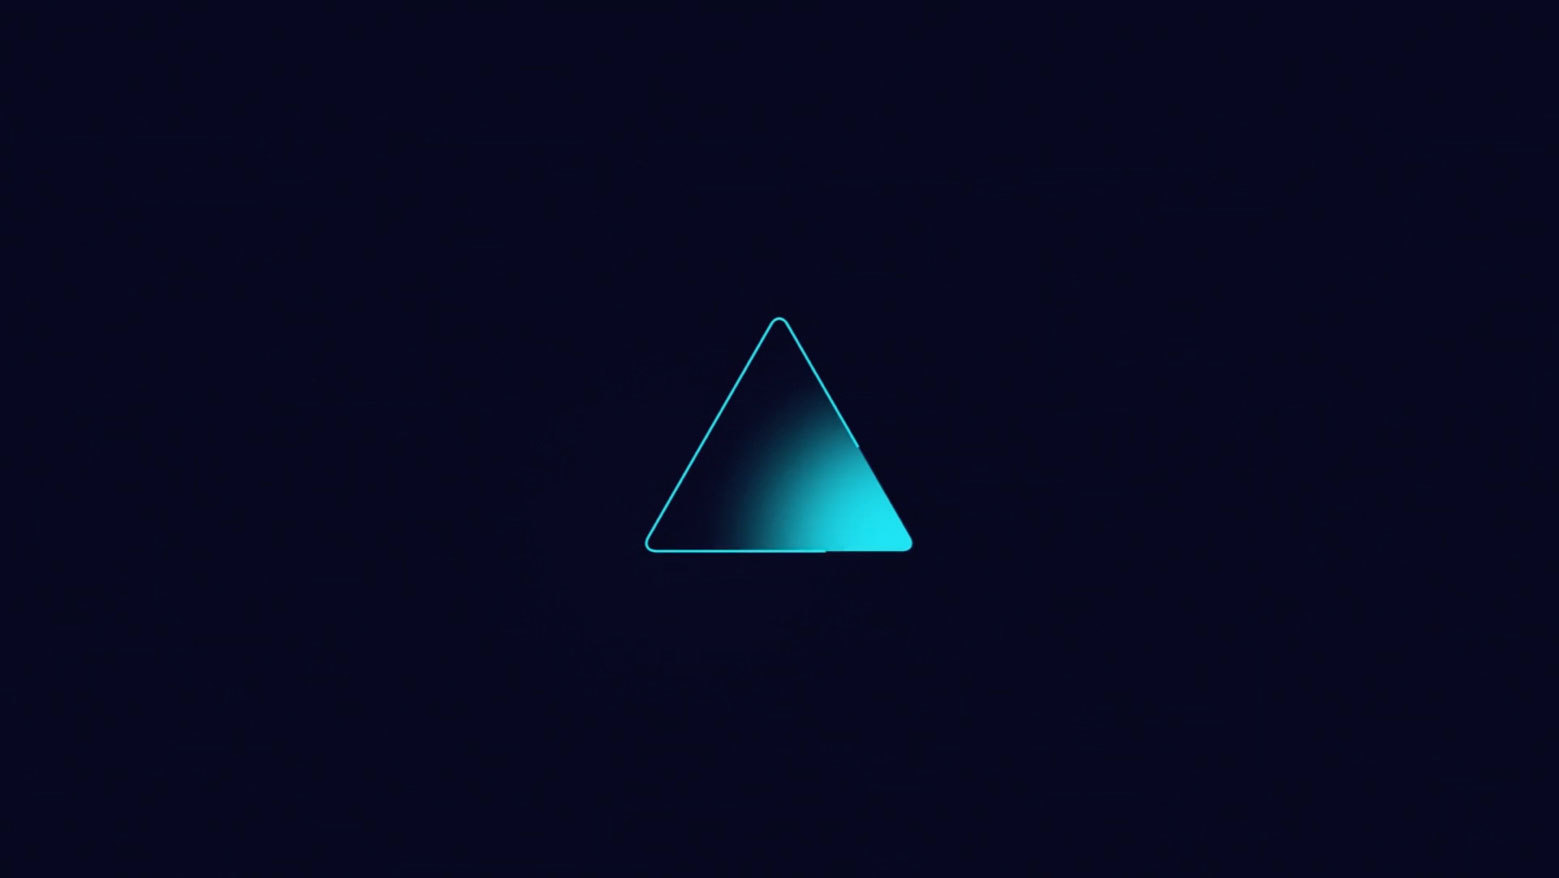 Video still from Slalom Build Explainer vid, cyan triangle with gradation in lower right corner.